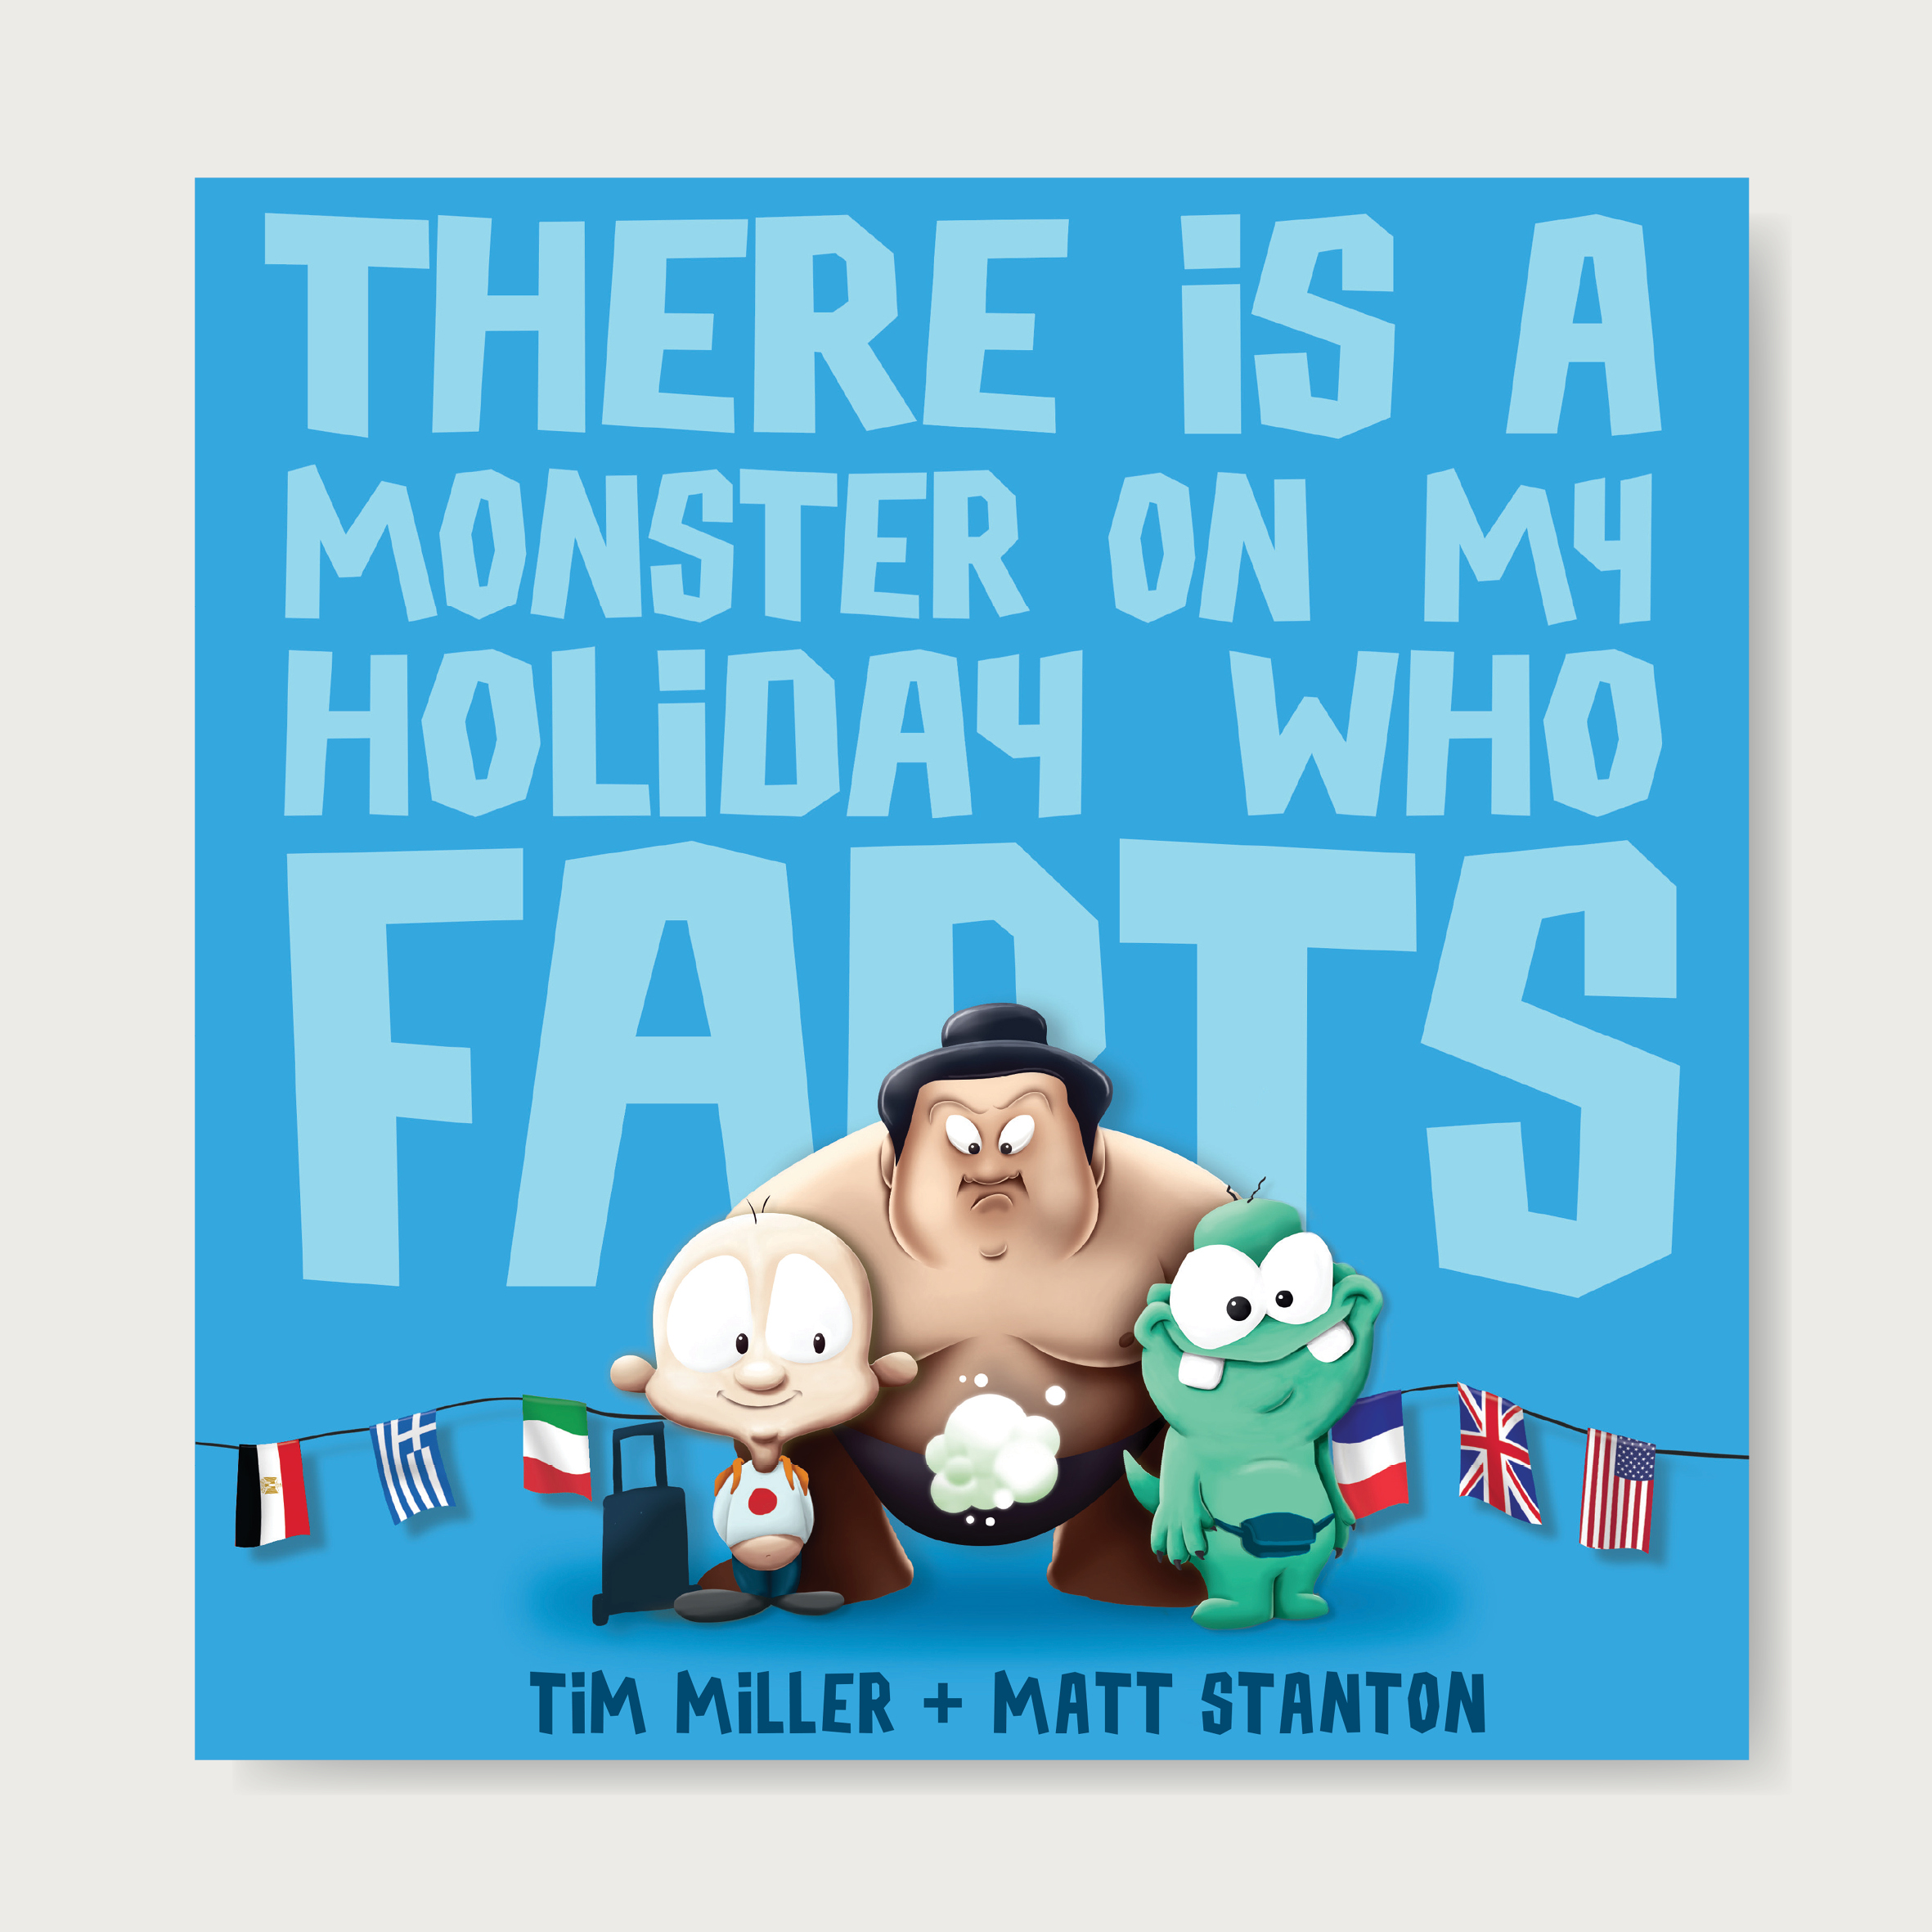 The Fart Monster is back! And he's gone global! Get your passports ready; we're about to go around the world in 80 farts ...  Ever wondered what could remove that smile from the Mona Lisa's face? What could force the Buckingham Palace guards to run for their lives? What mighty gust of wind could finally make the Leaning Tower of Pisa fall? All will be revealed in THERE IS A MONSTER ON MY HOLIDAY WHO FARTS ...  Ages: 2-5